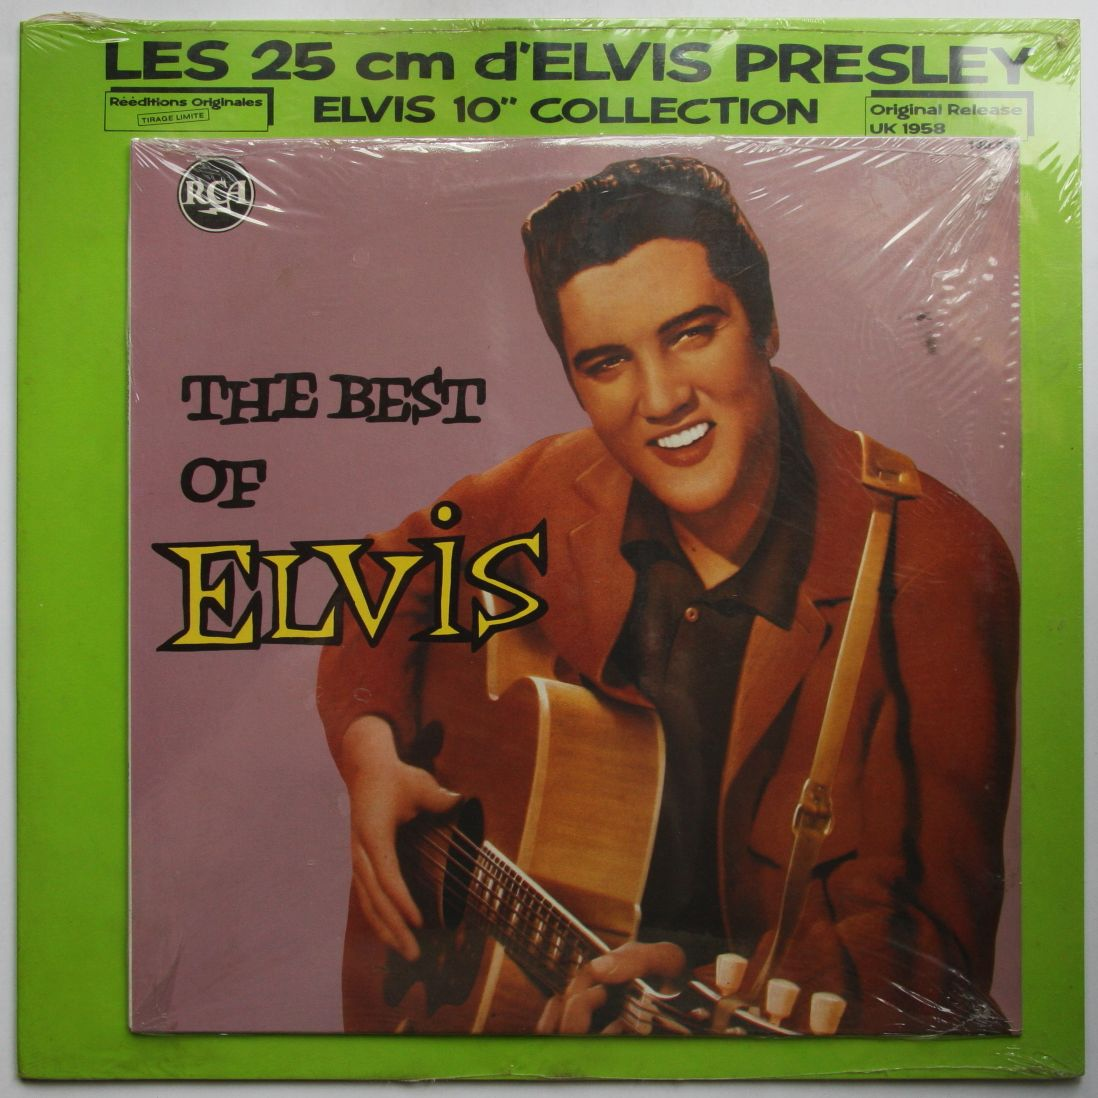 The Best Of Elvis - Elvis Presley